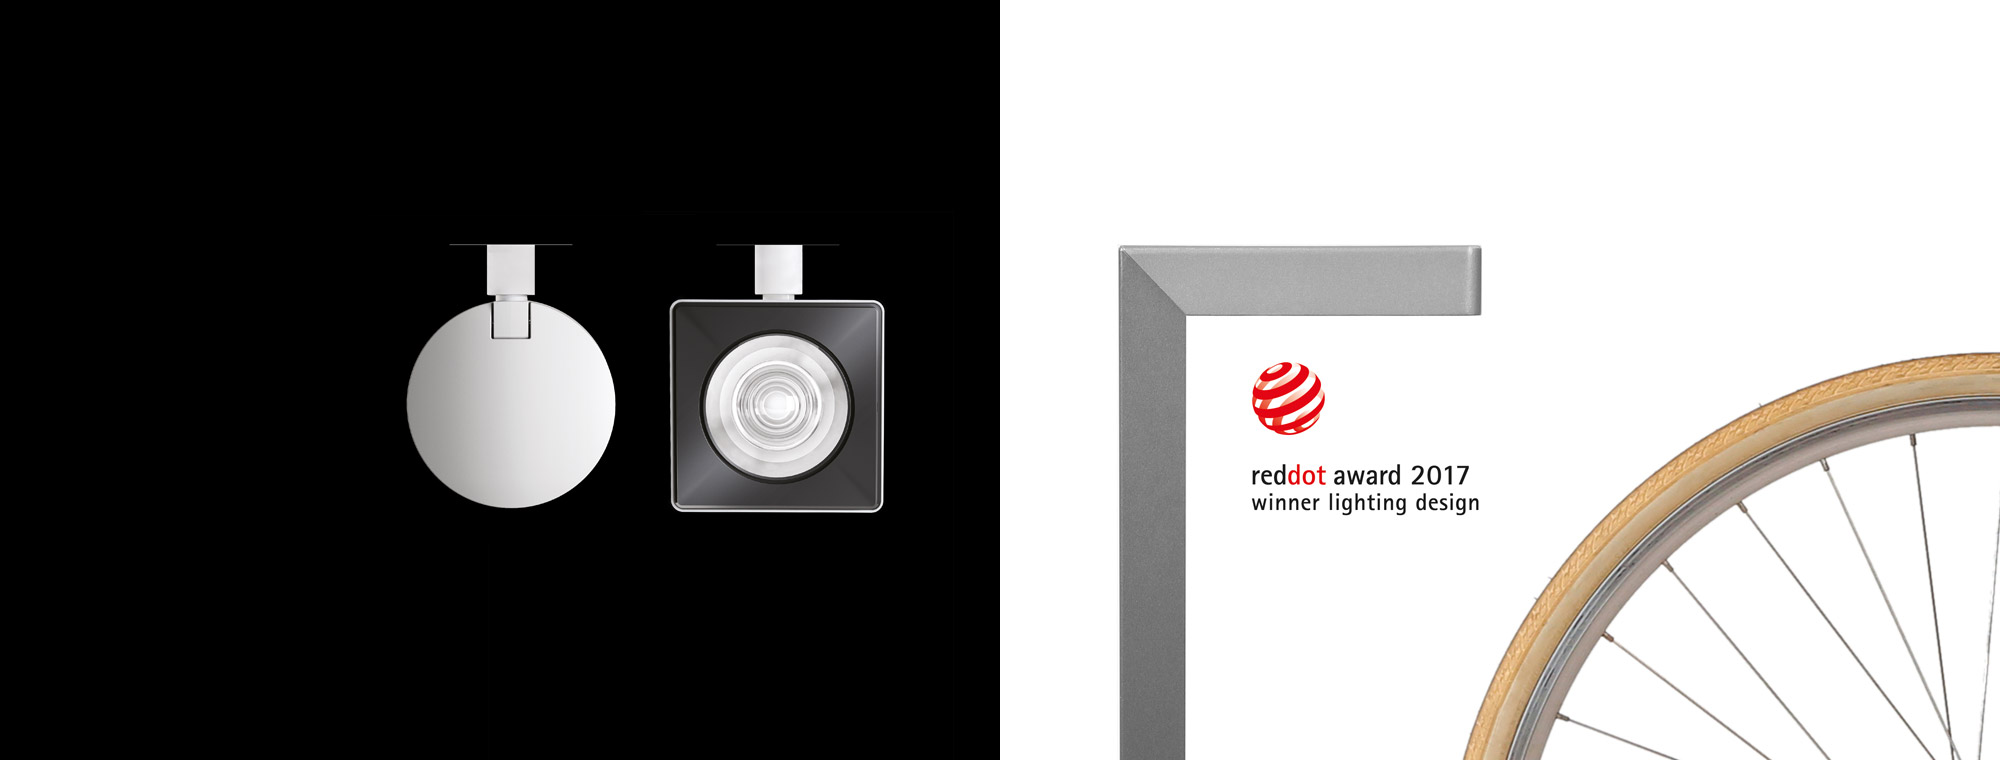 View and Lander awarded at 2017 Red Dot Awards